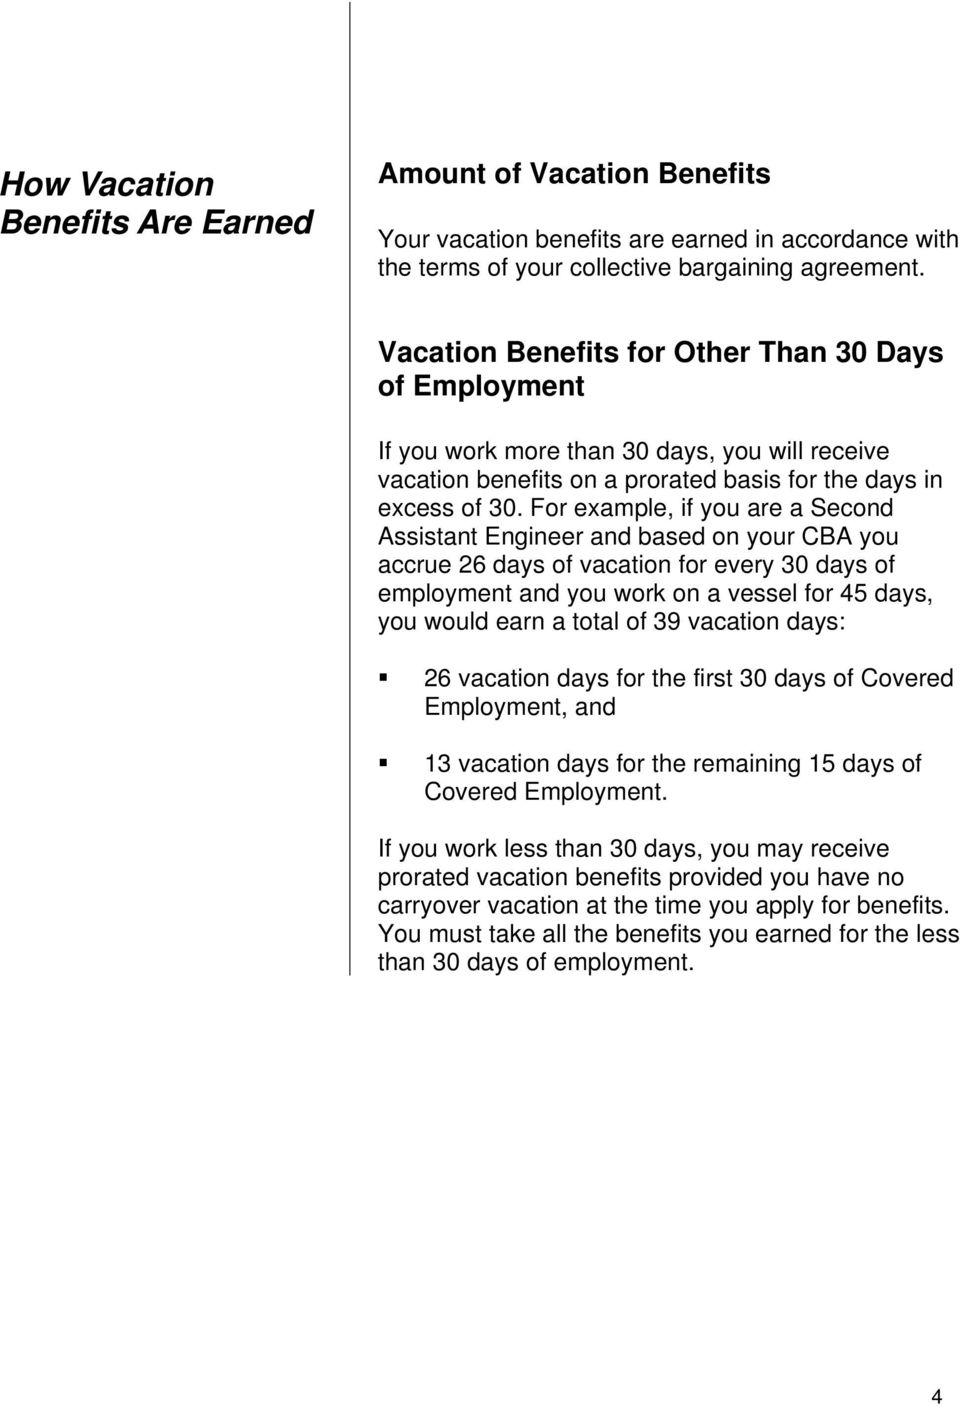 For example, if you are a Second Assistant Engineer and based on your CBA you accrue 26 days of vacation for every 30 days of employment and you work on a vessel for 45 days, you would earn a total